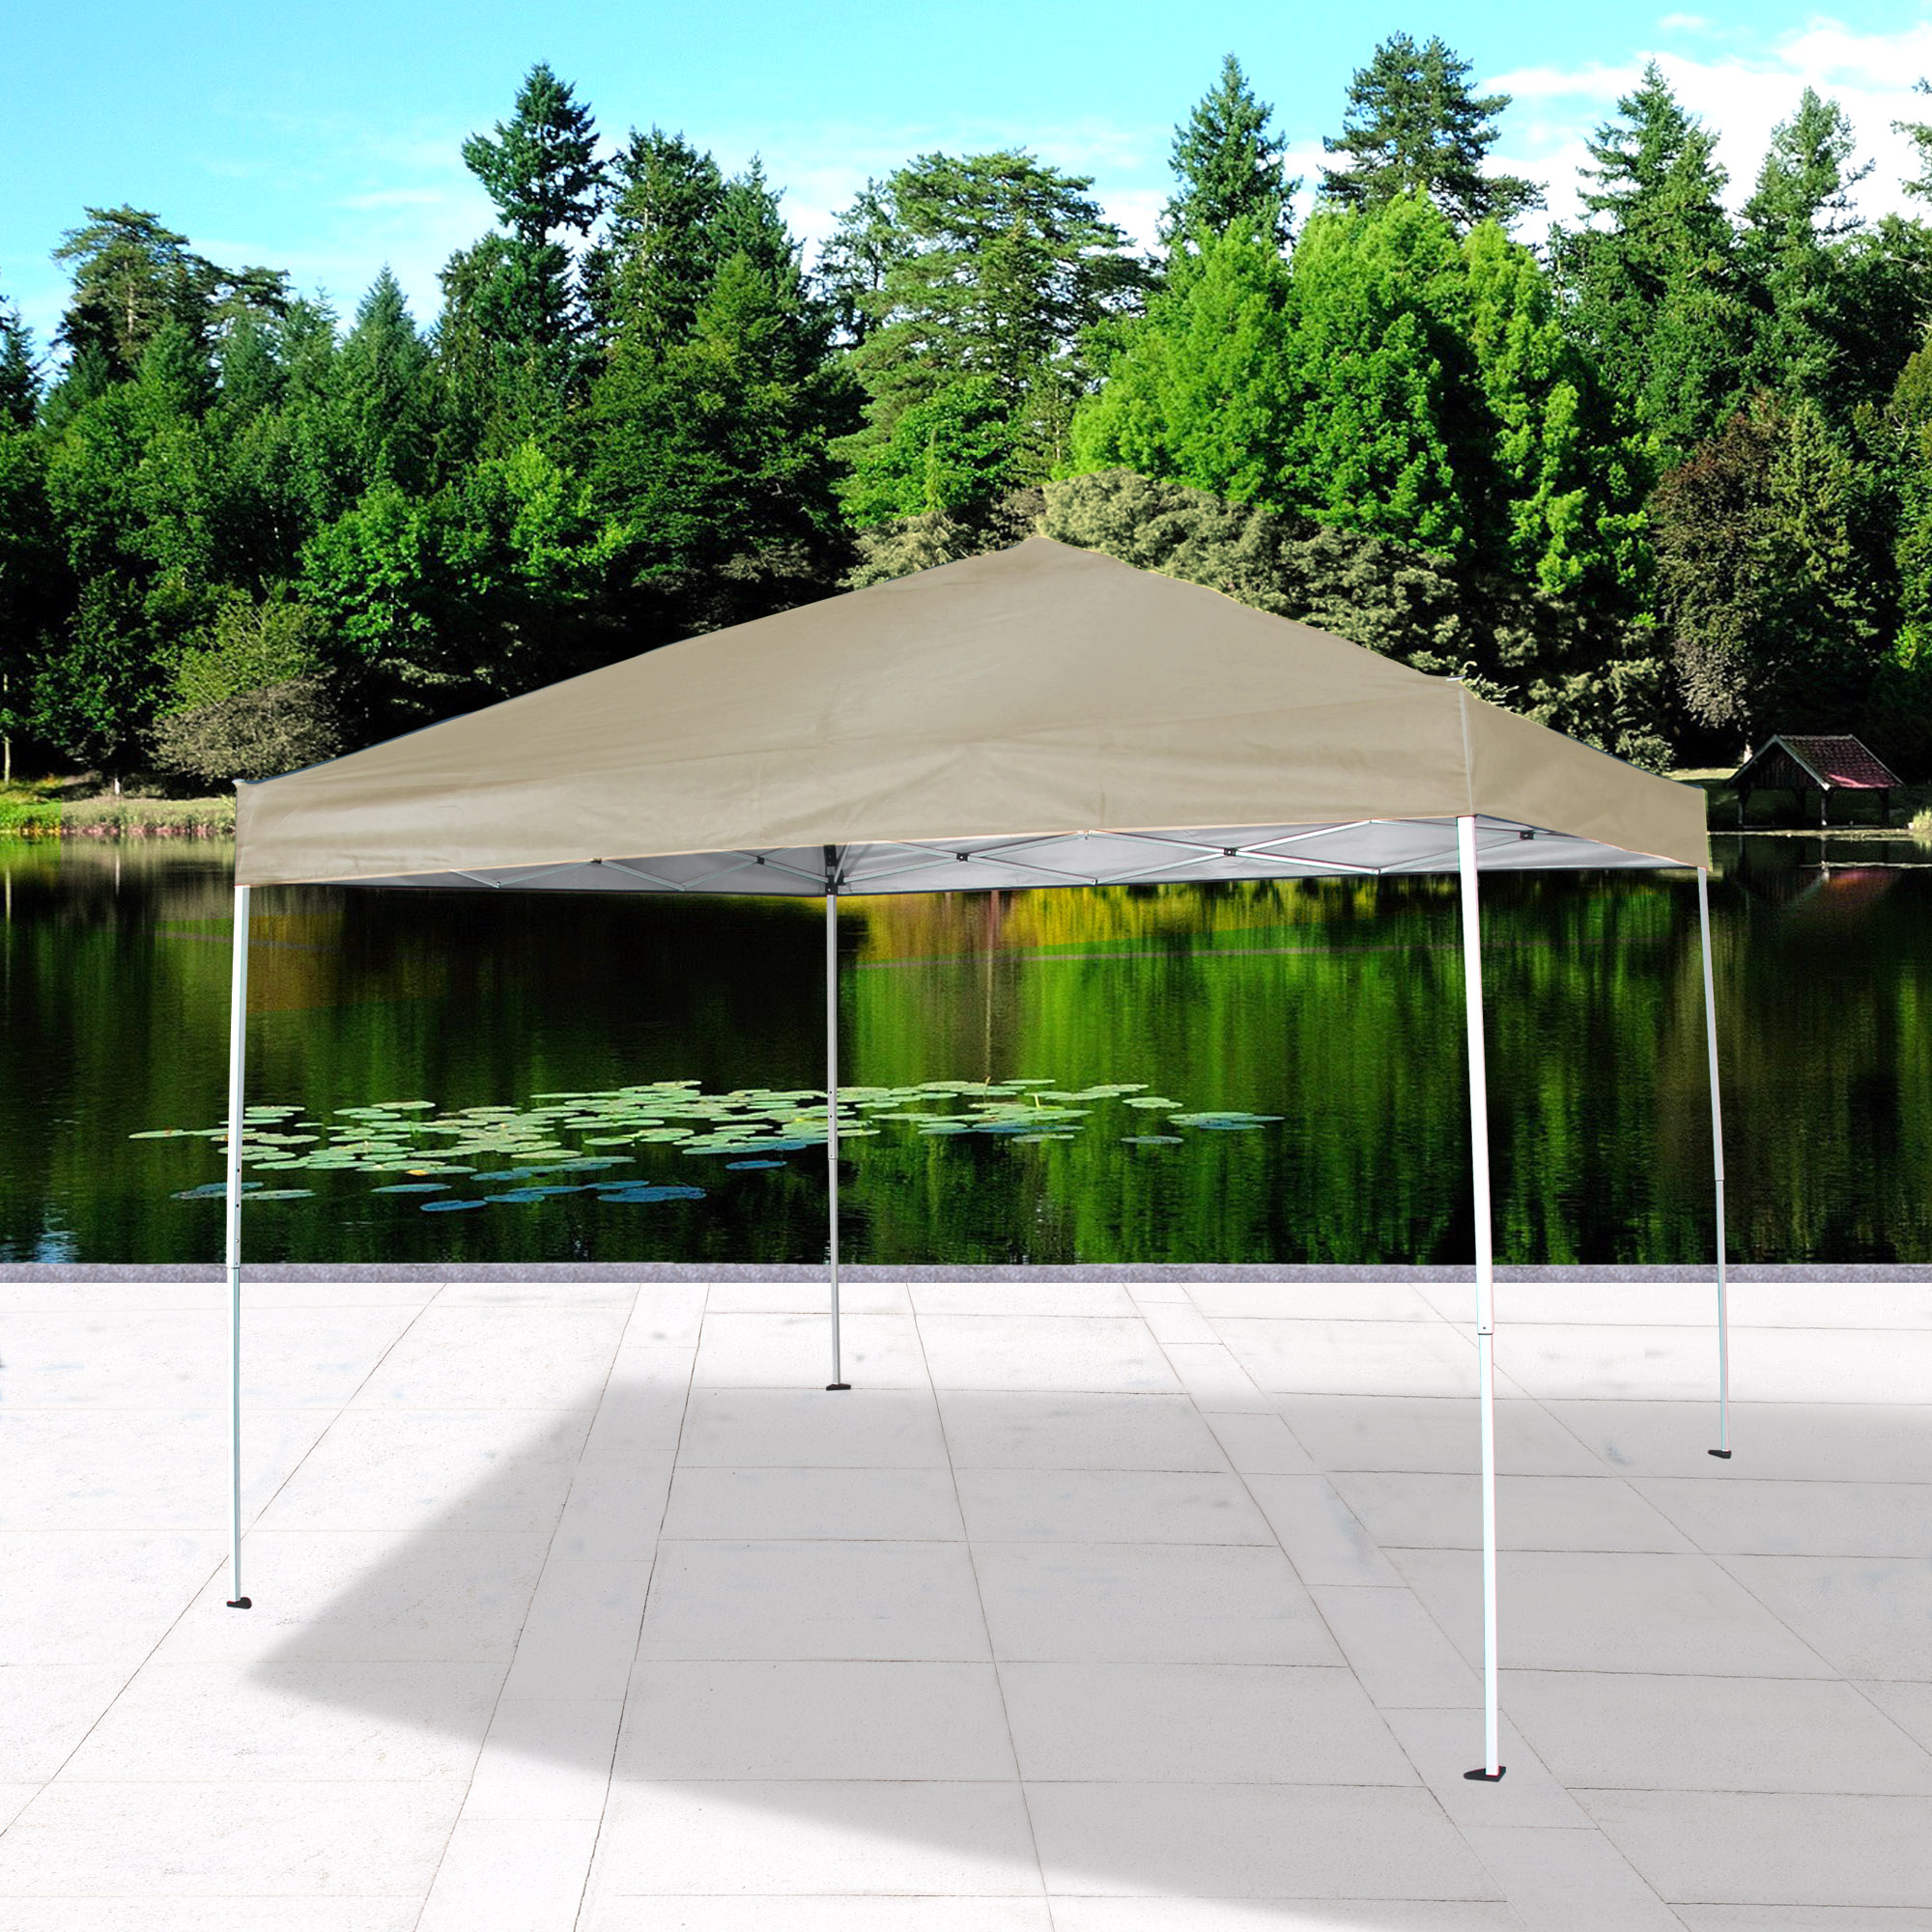 Cloud Mountain Pop Up Canopy Tent 10u0027 x 10u0027 UV Coated Outdoor Garden Gazebo Tent Easy Set Up with Carry Bag - Walmart.com & Cloud Mountain Pop Up Canopy Tent 10u0027 x 10u0027 UV Coated Outdoor ...